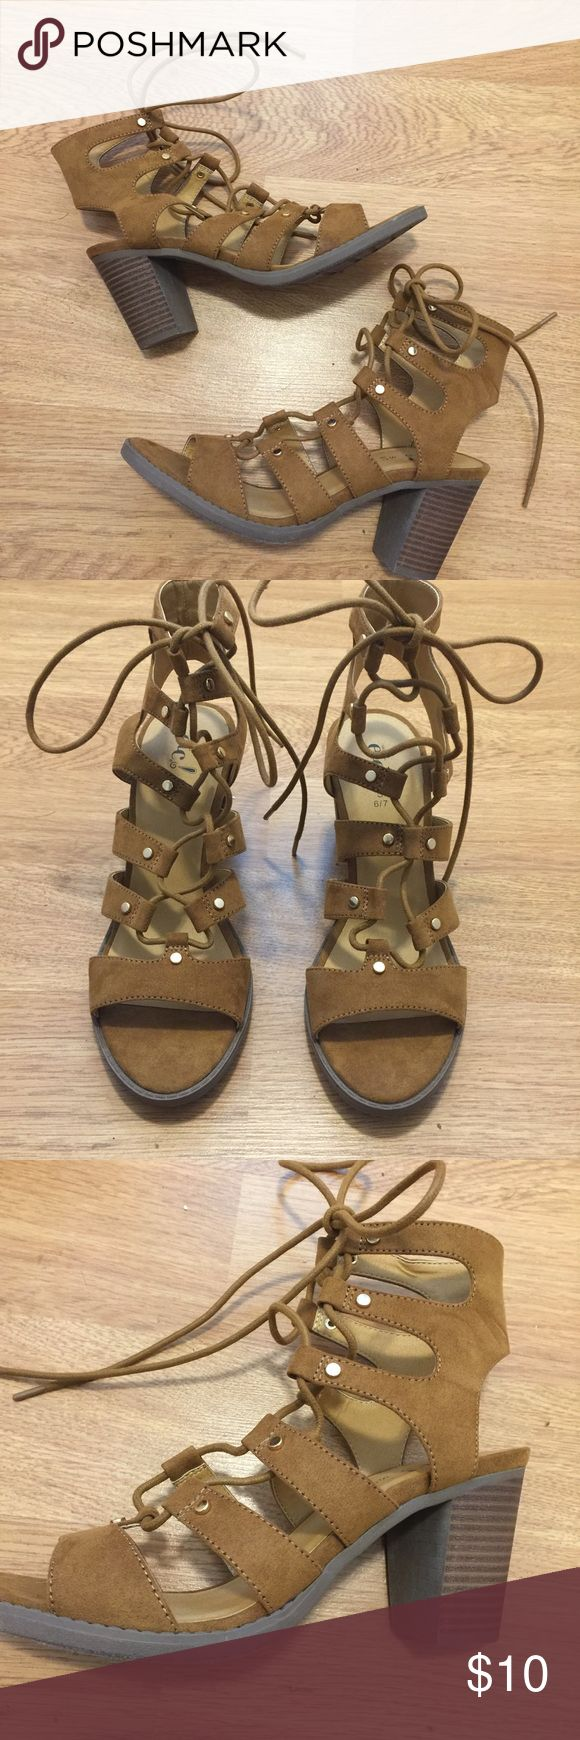 Camel Heeled Sandals Never worn Camel lace up heeled sandals! A serious must have for summer and fall! Rue21 Shoes Heels